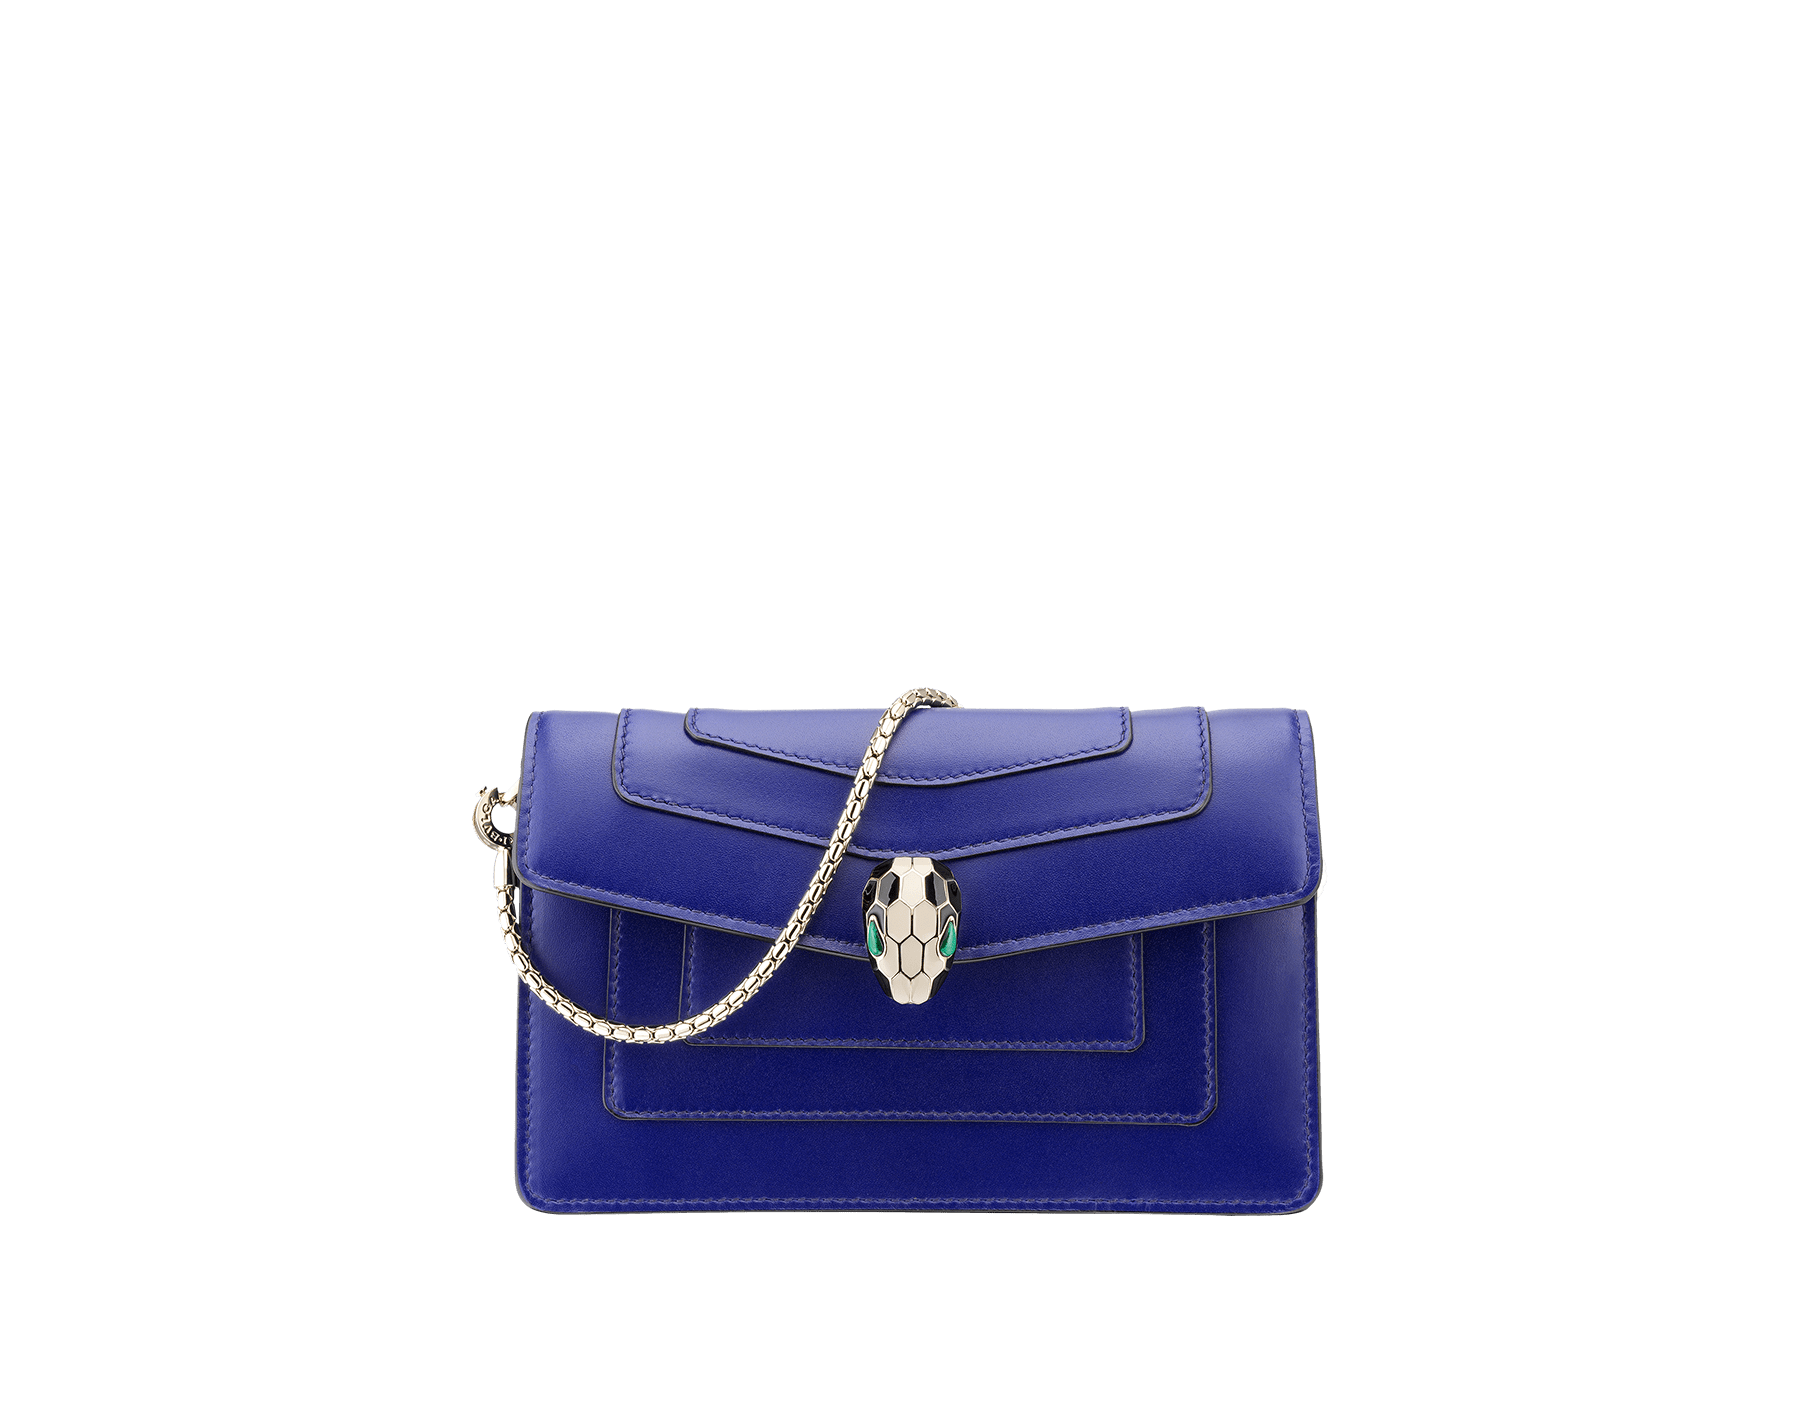 Mini Serpenti Forever bag in royal sapphire calf leather and teal topaz calf leather lining. Brass light gold plated Serpenti head stud closure in black and white enamel with malachite eyes. 283239 image 1